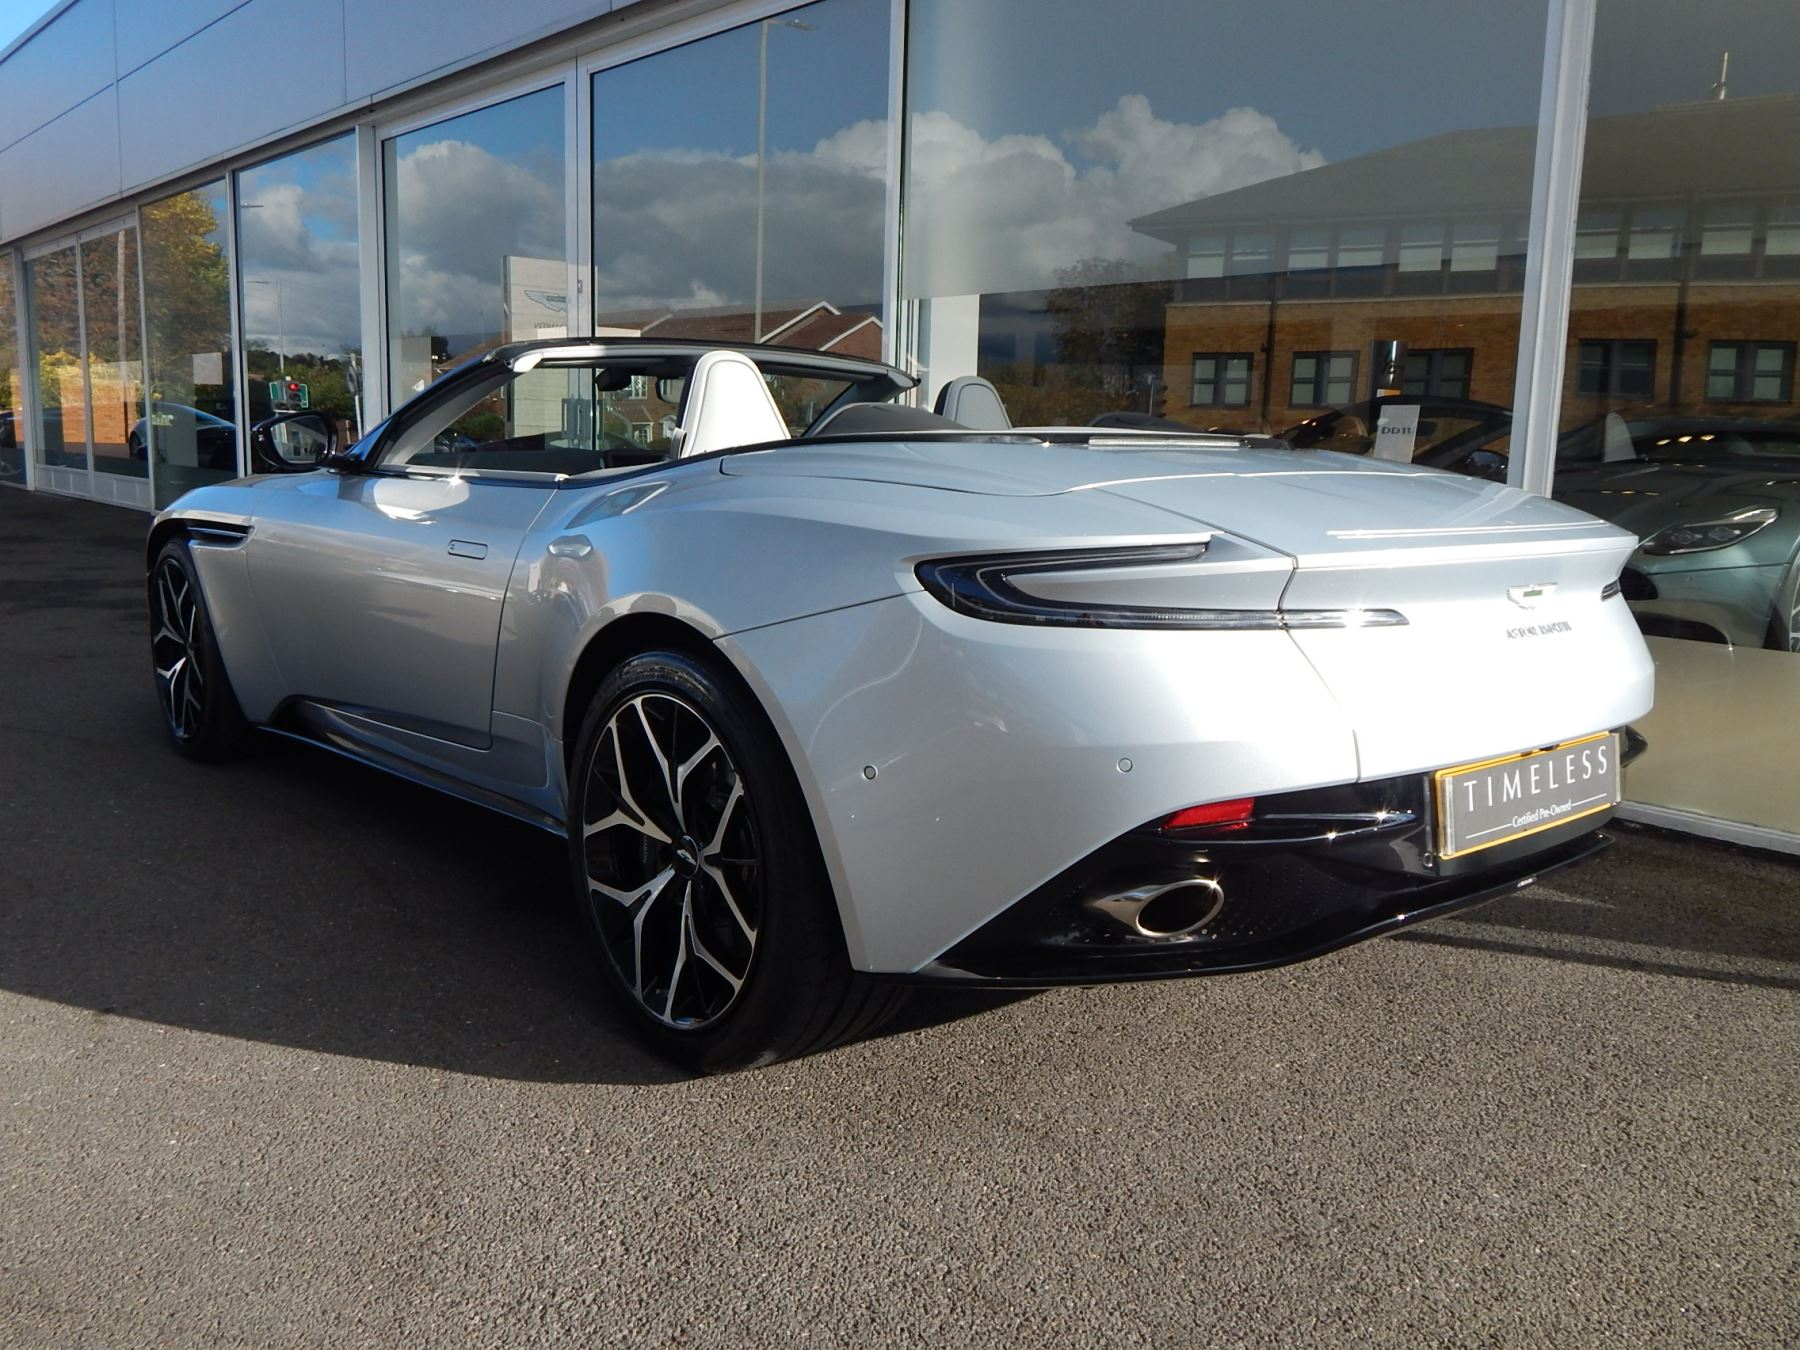 Aston Martin DB11 Volante 4.0 V8 Twin Turbo image 26